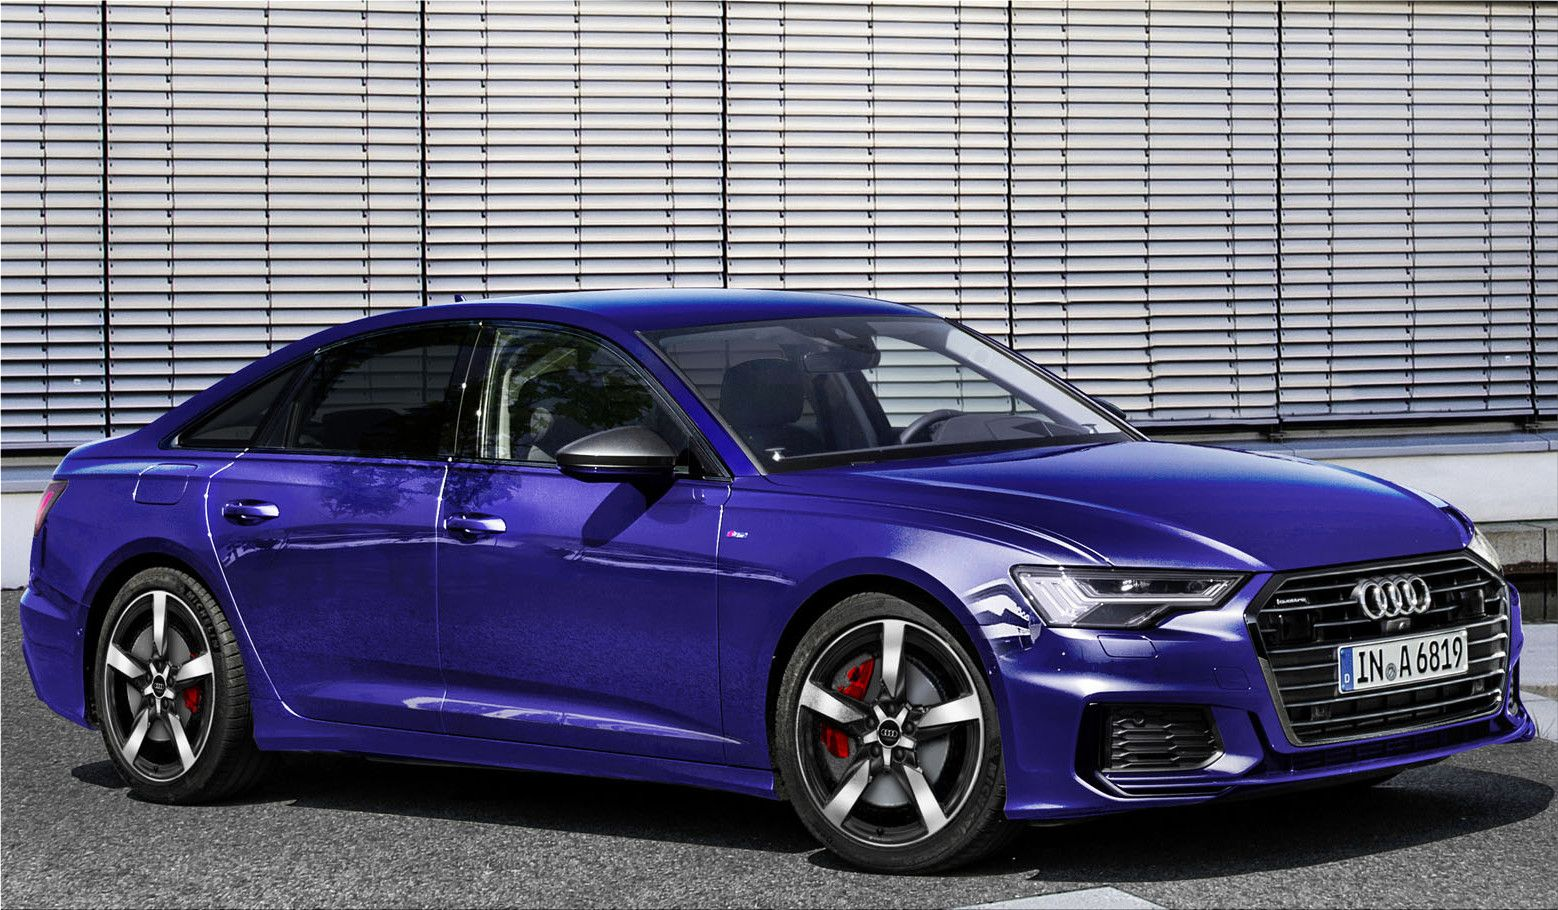 2020 Audi A6 Comes Price, Design and Review